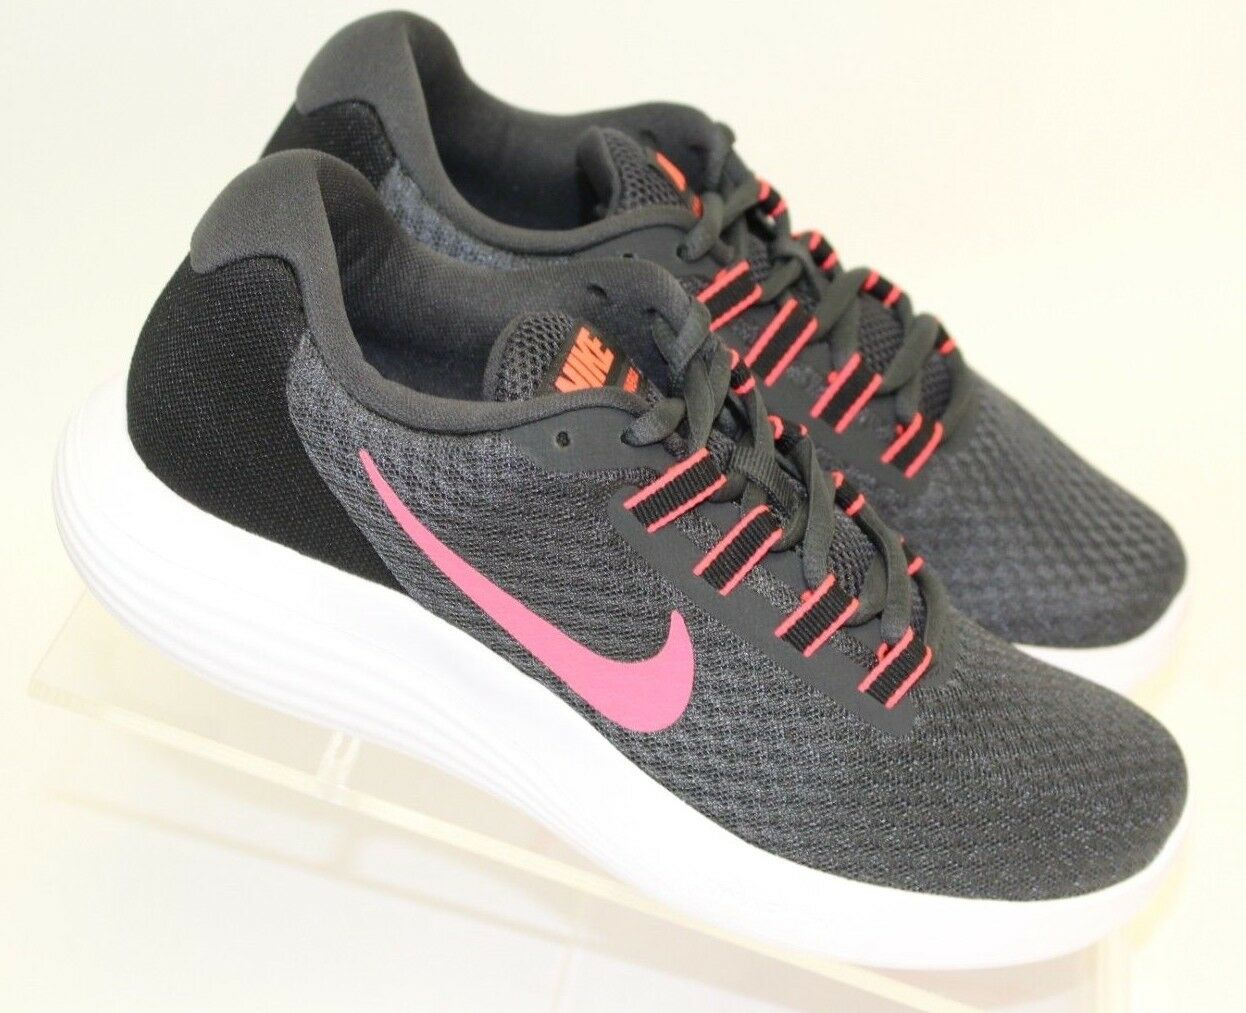 NEW Women's Women's Women's Nike Lunarconverge  Anthracite Hot Punch - Size  7 23a048